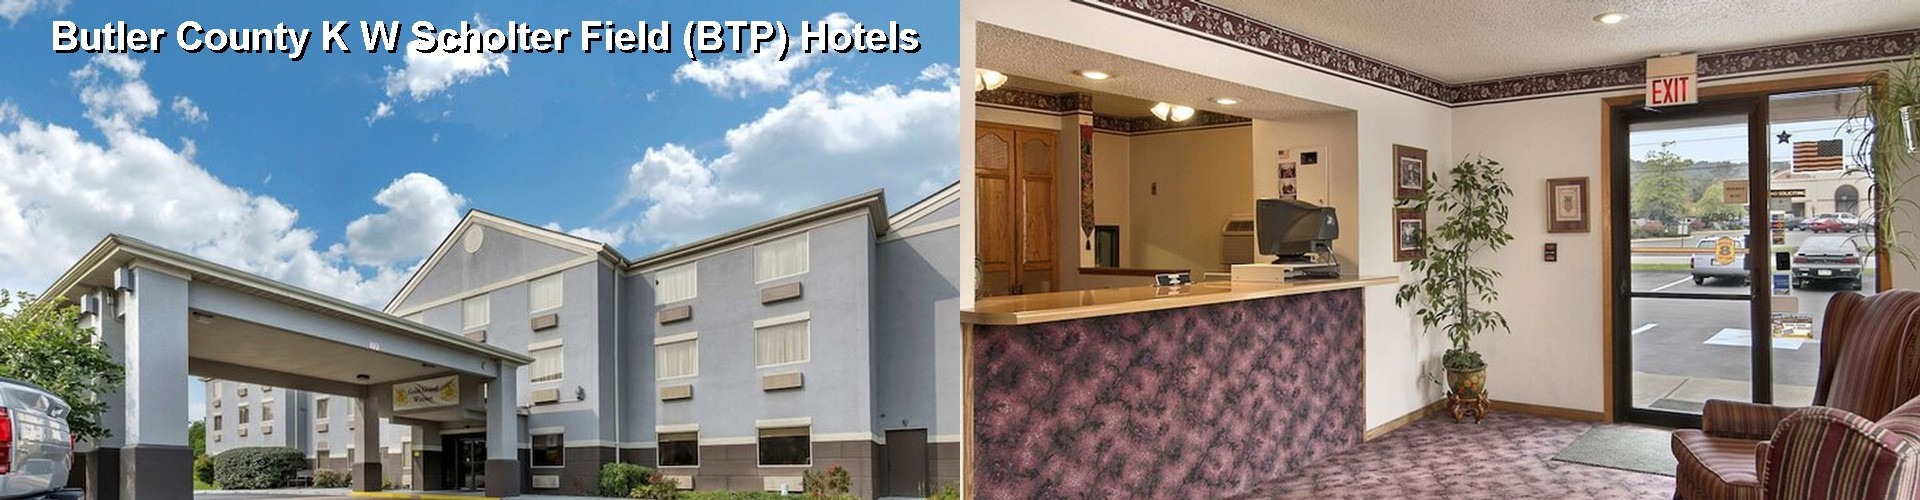 5 Best Hotels near Butler County K W Scholter Field (BTP)